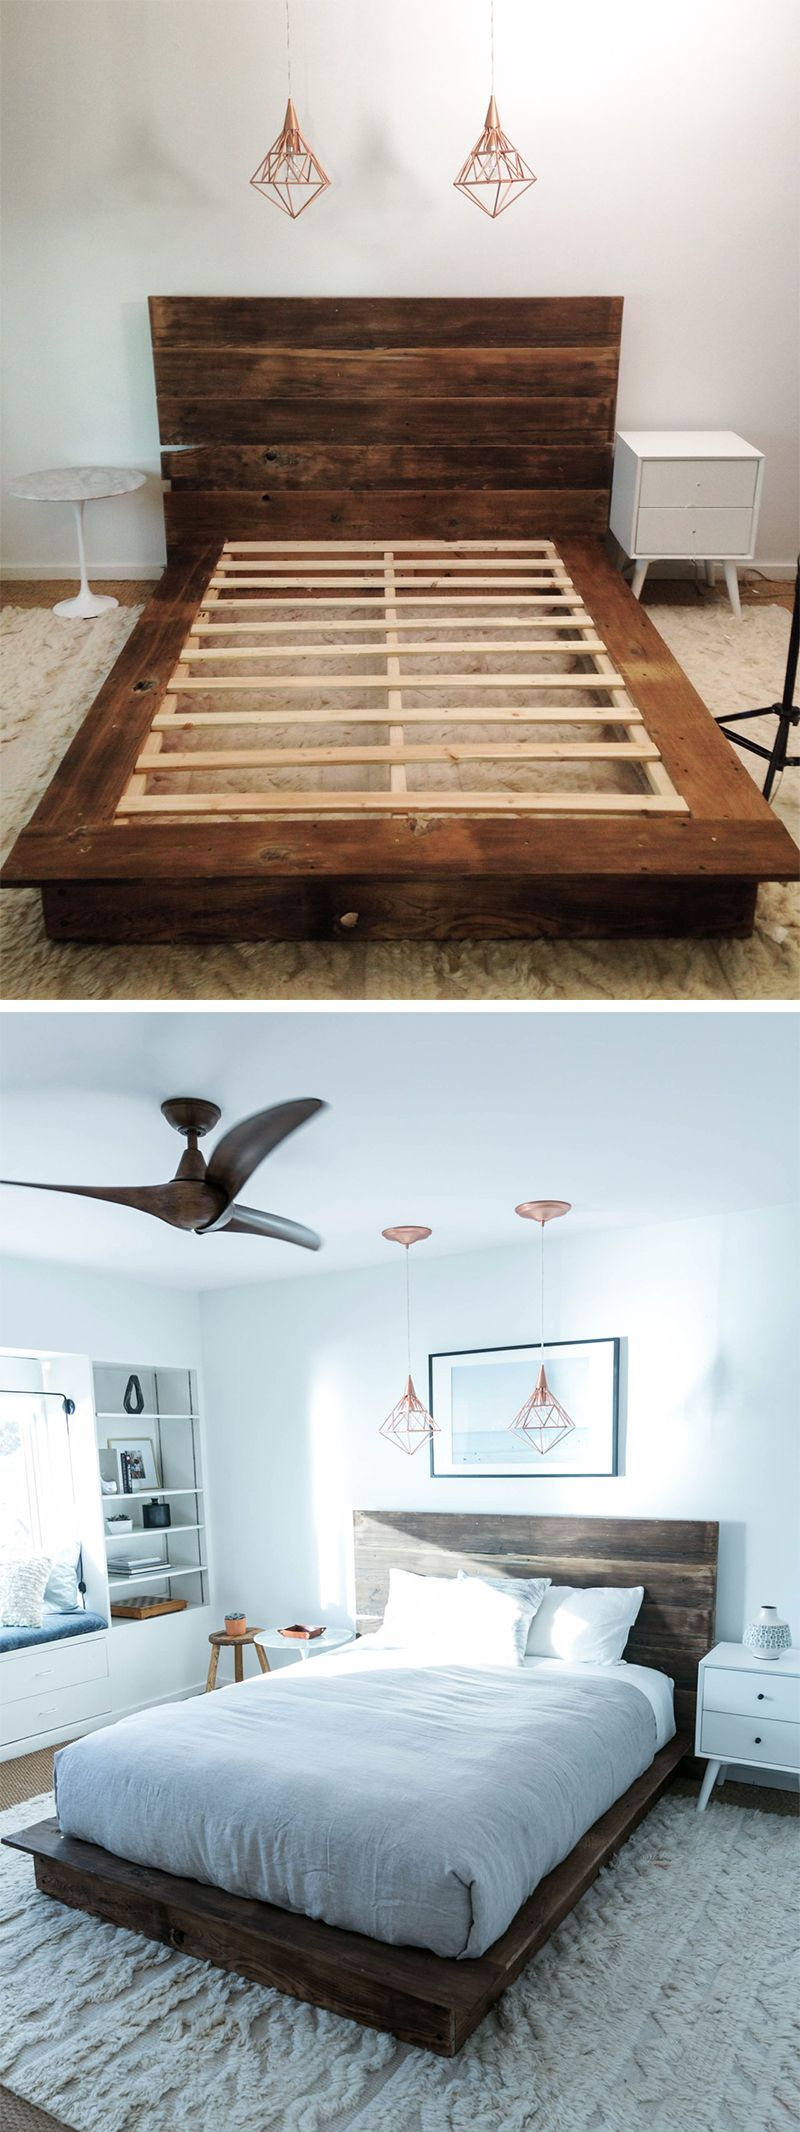 DIY Reclaimed Wood Platform Bed | Wood platform bed ...